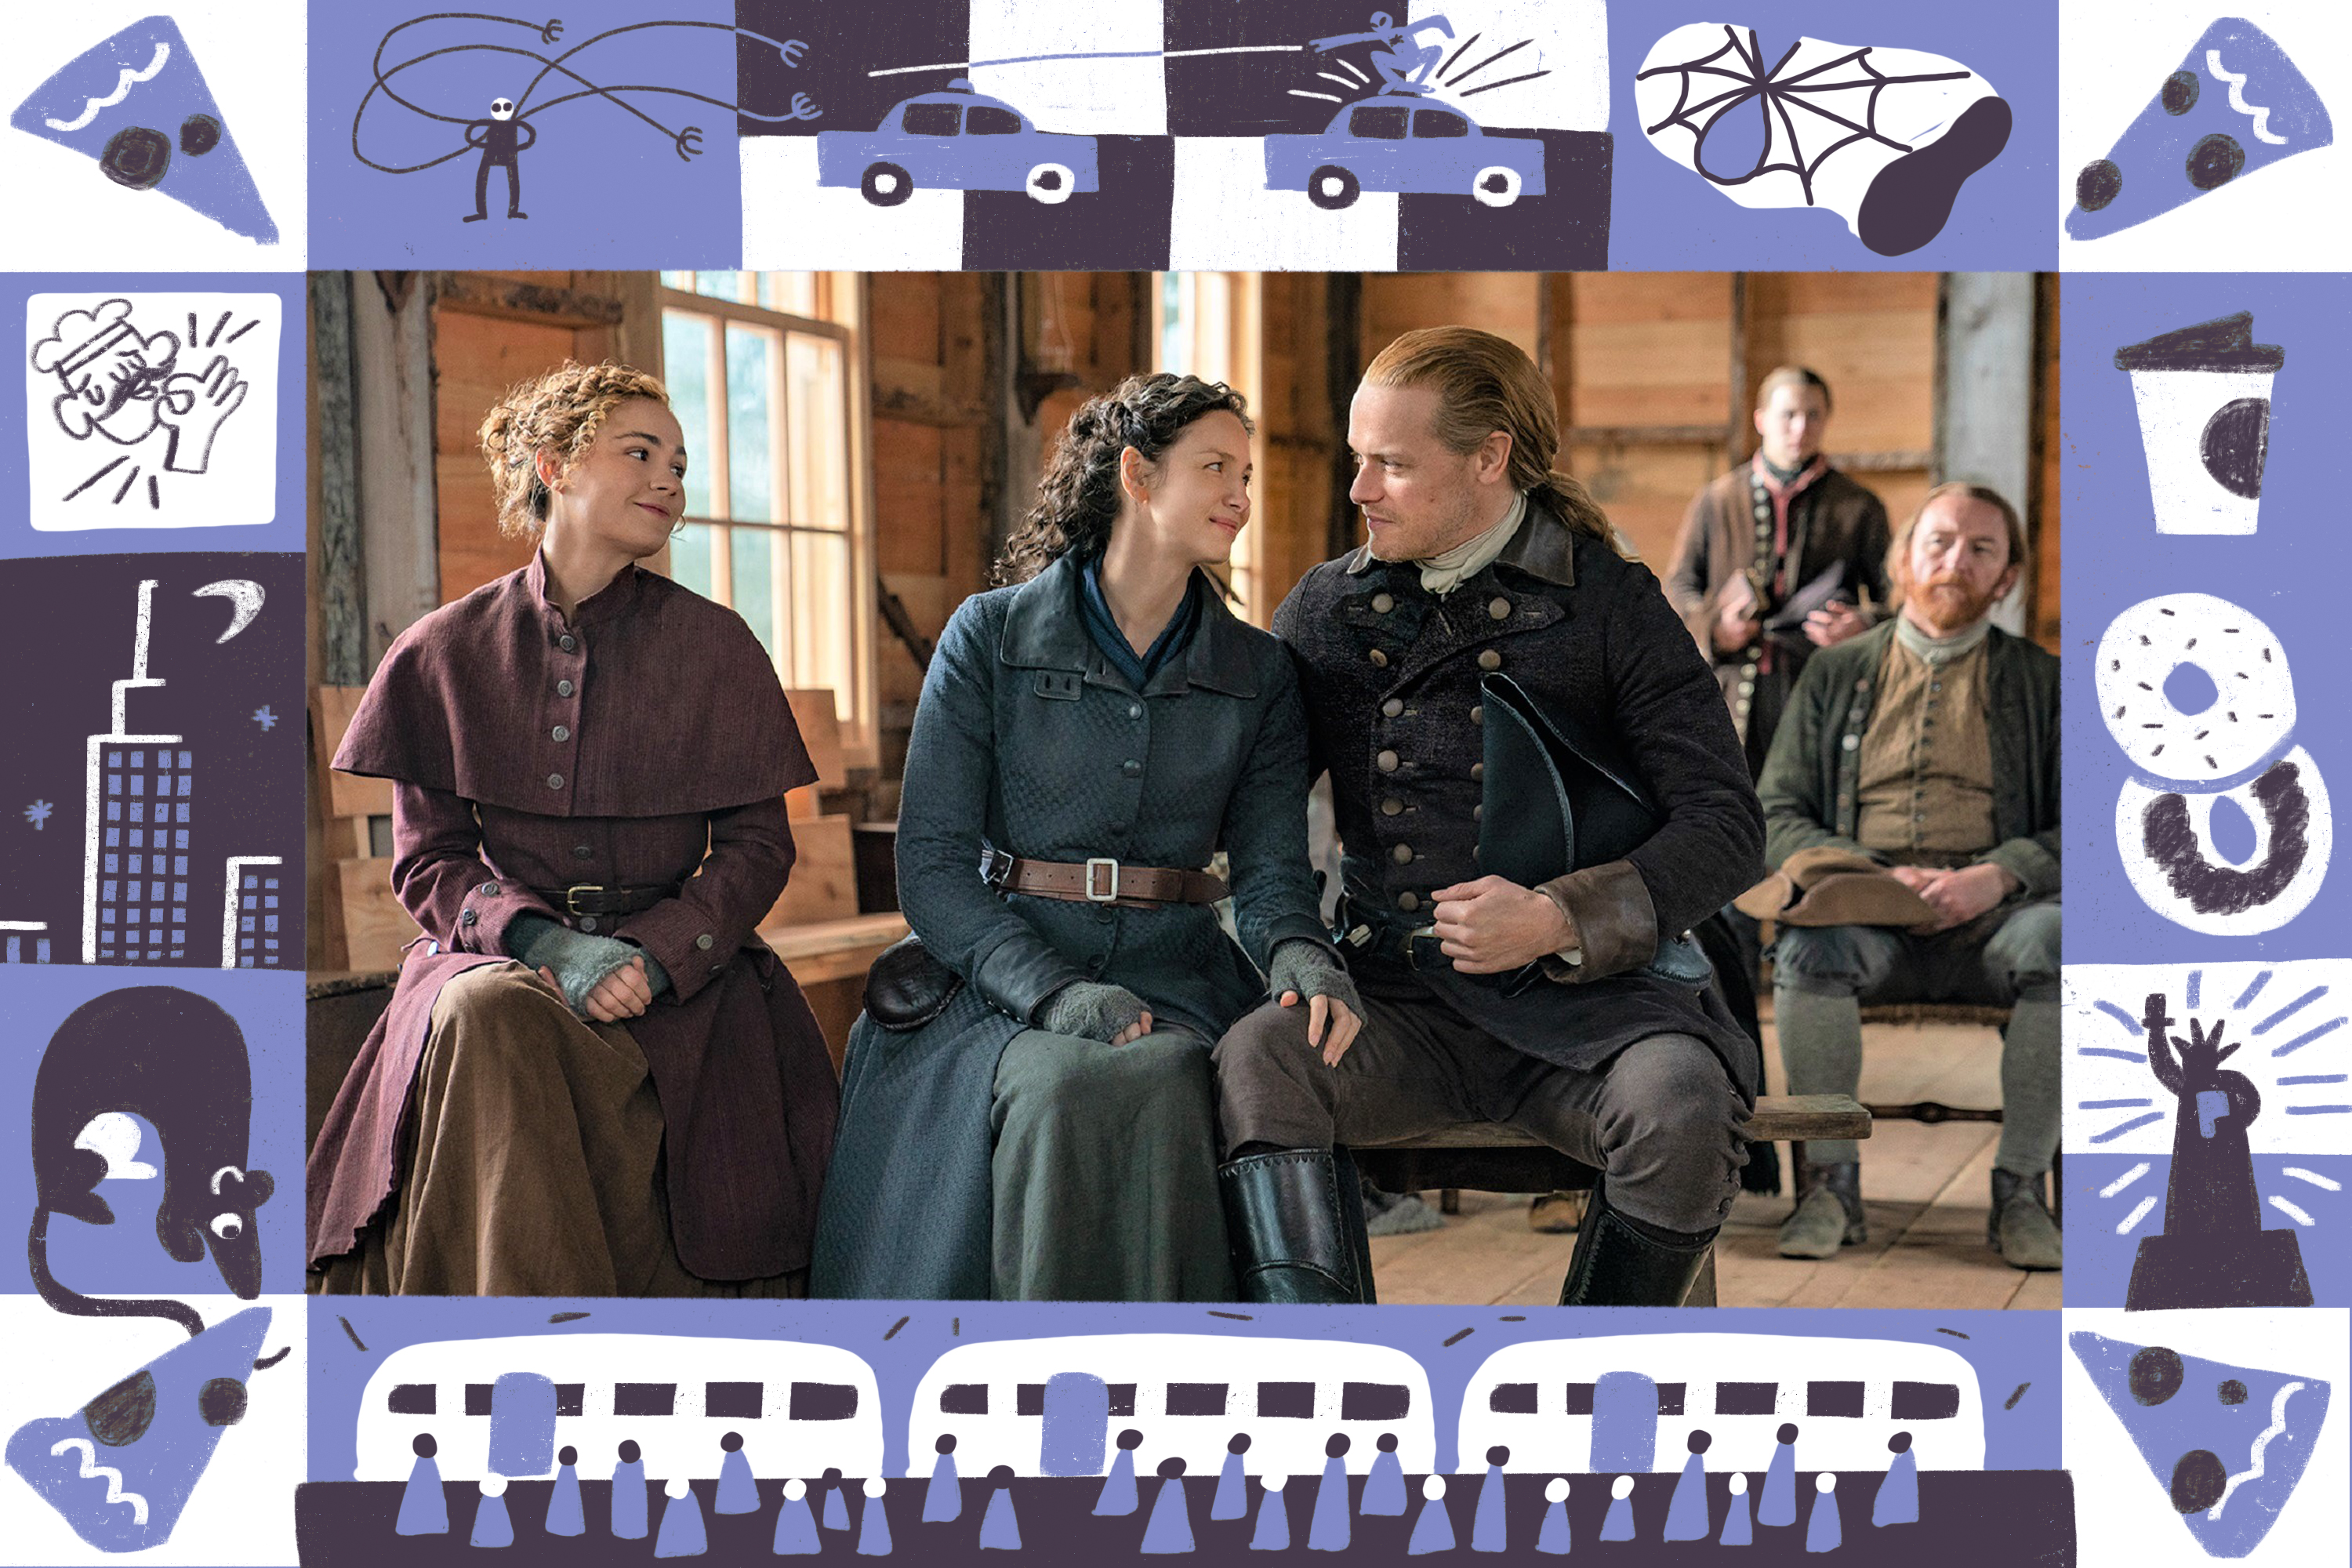 Scene from the TV show Outlander in a frame featuring illustrated icons from New York